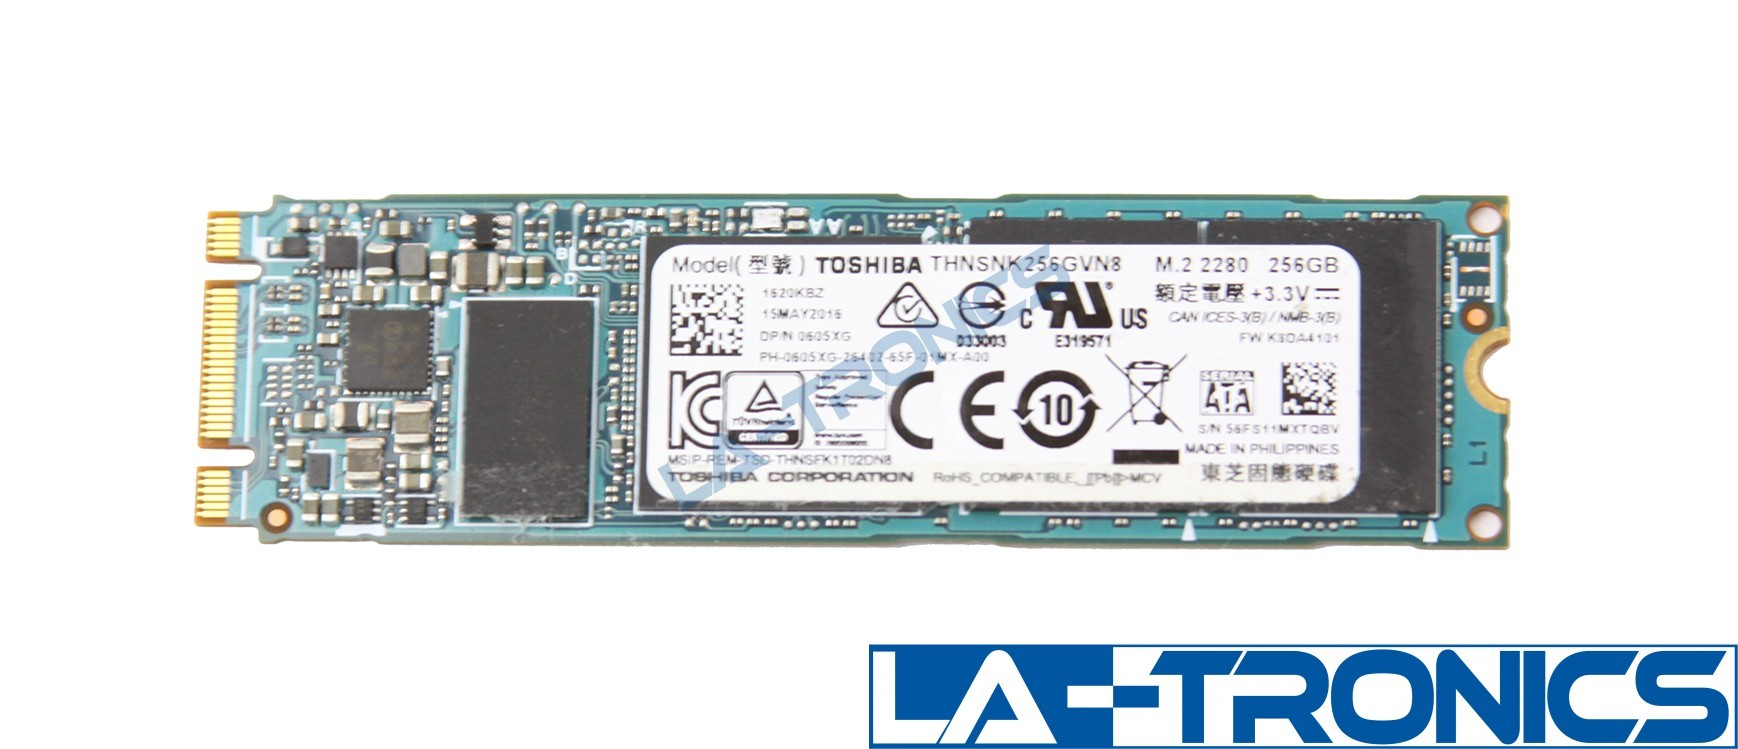 Toshiba THNSNK256GVN8 256GB 1100 M.2 2280 80mm Solid State Drive SATA 6G